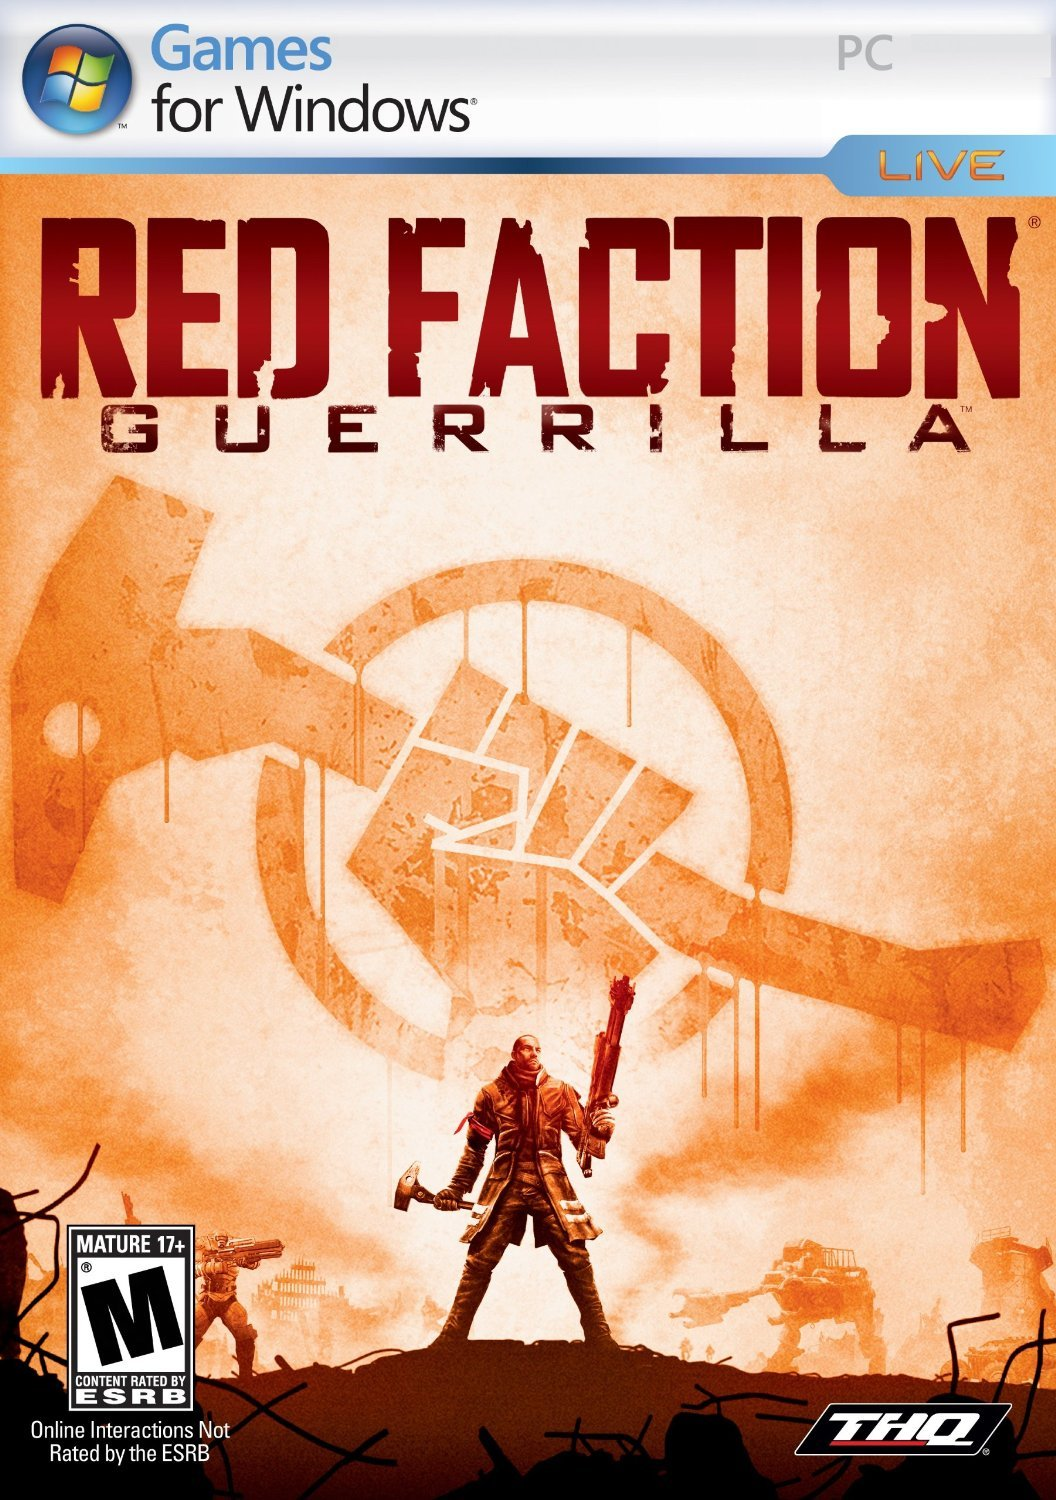 Red Faction Guerrilla Complete Windows PC Game Download Steam CD-Key Global